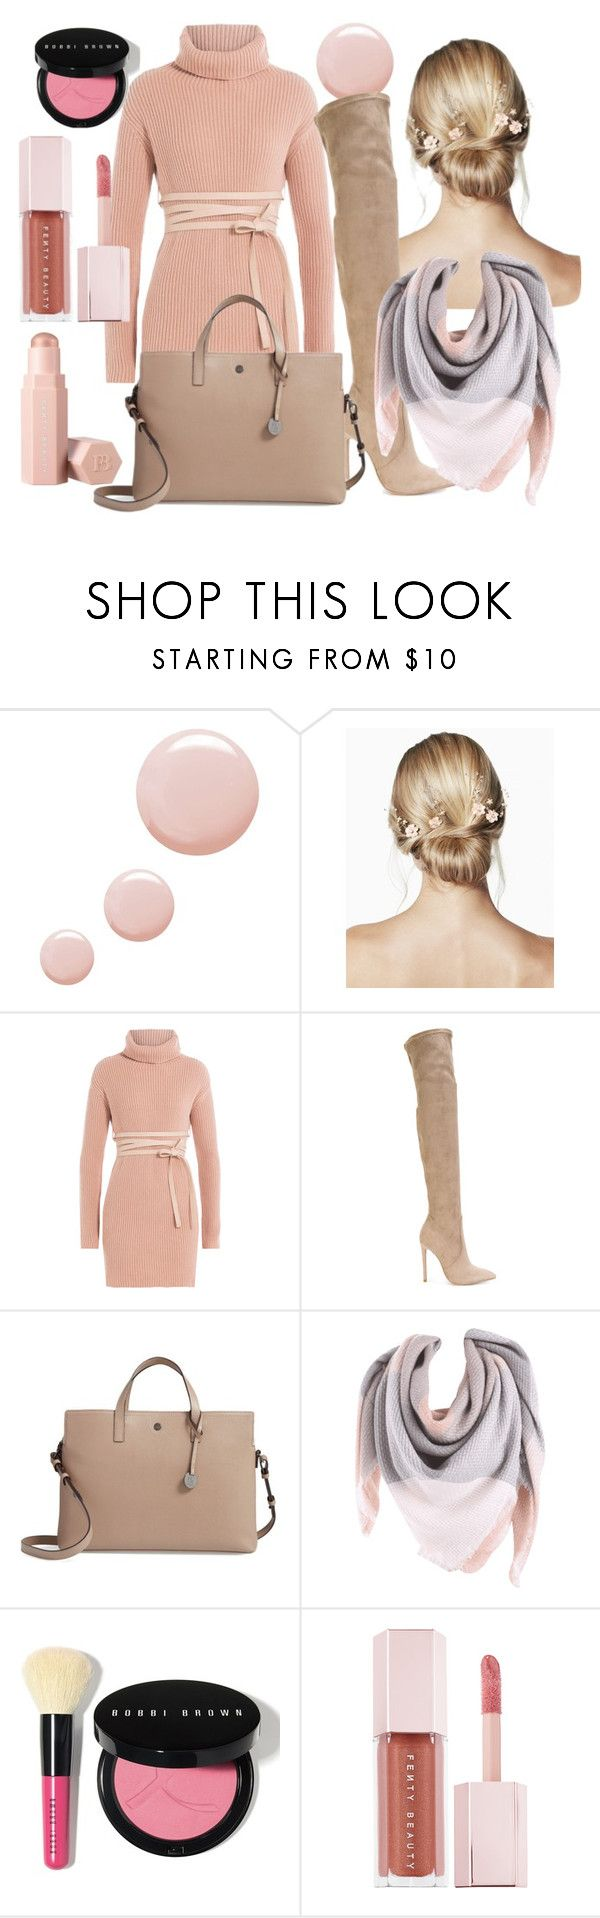 """Warm Blush"" by caitlintol on Polyvore featuring Topshop, Valentino, Gianni Renzi, Lodis, Bobbi Brown Cosmetics and Puma"